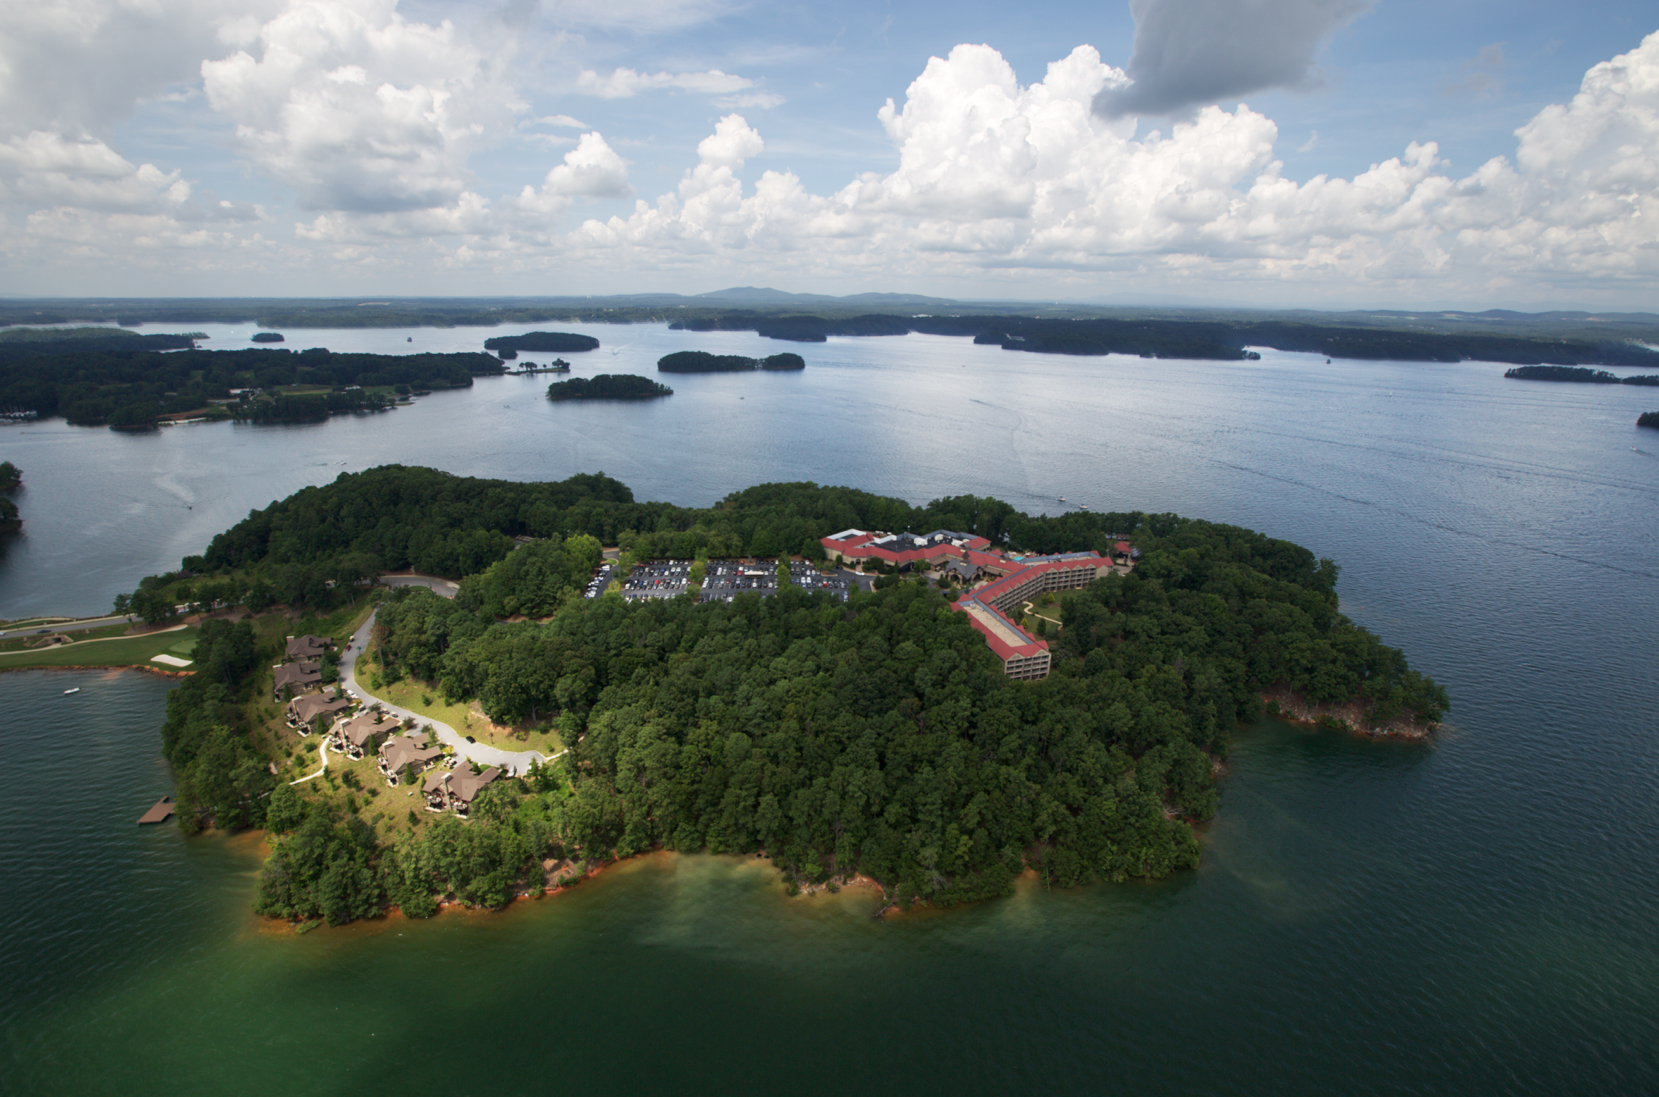 Legacy Lodge at Lanier Islands These days, two million dollars won't buy you a decent Ferrari or a home in Malibu, but it's plenty of money to spruce up the guest rooms at Lanier Islands' Legacy Lodge on Lake Lanier.